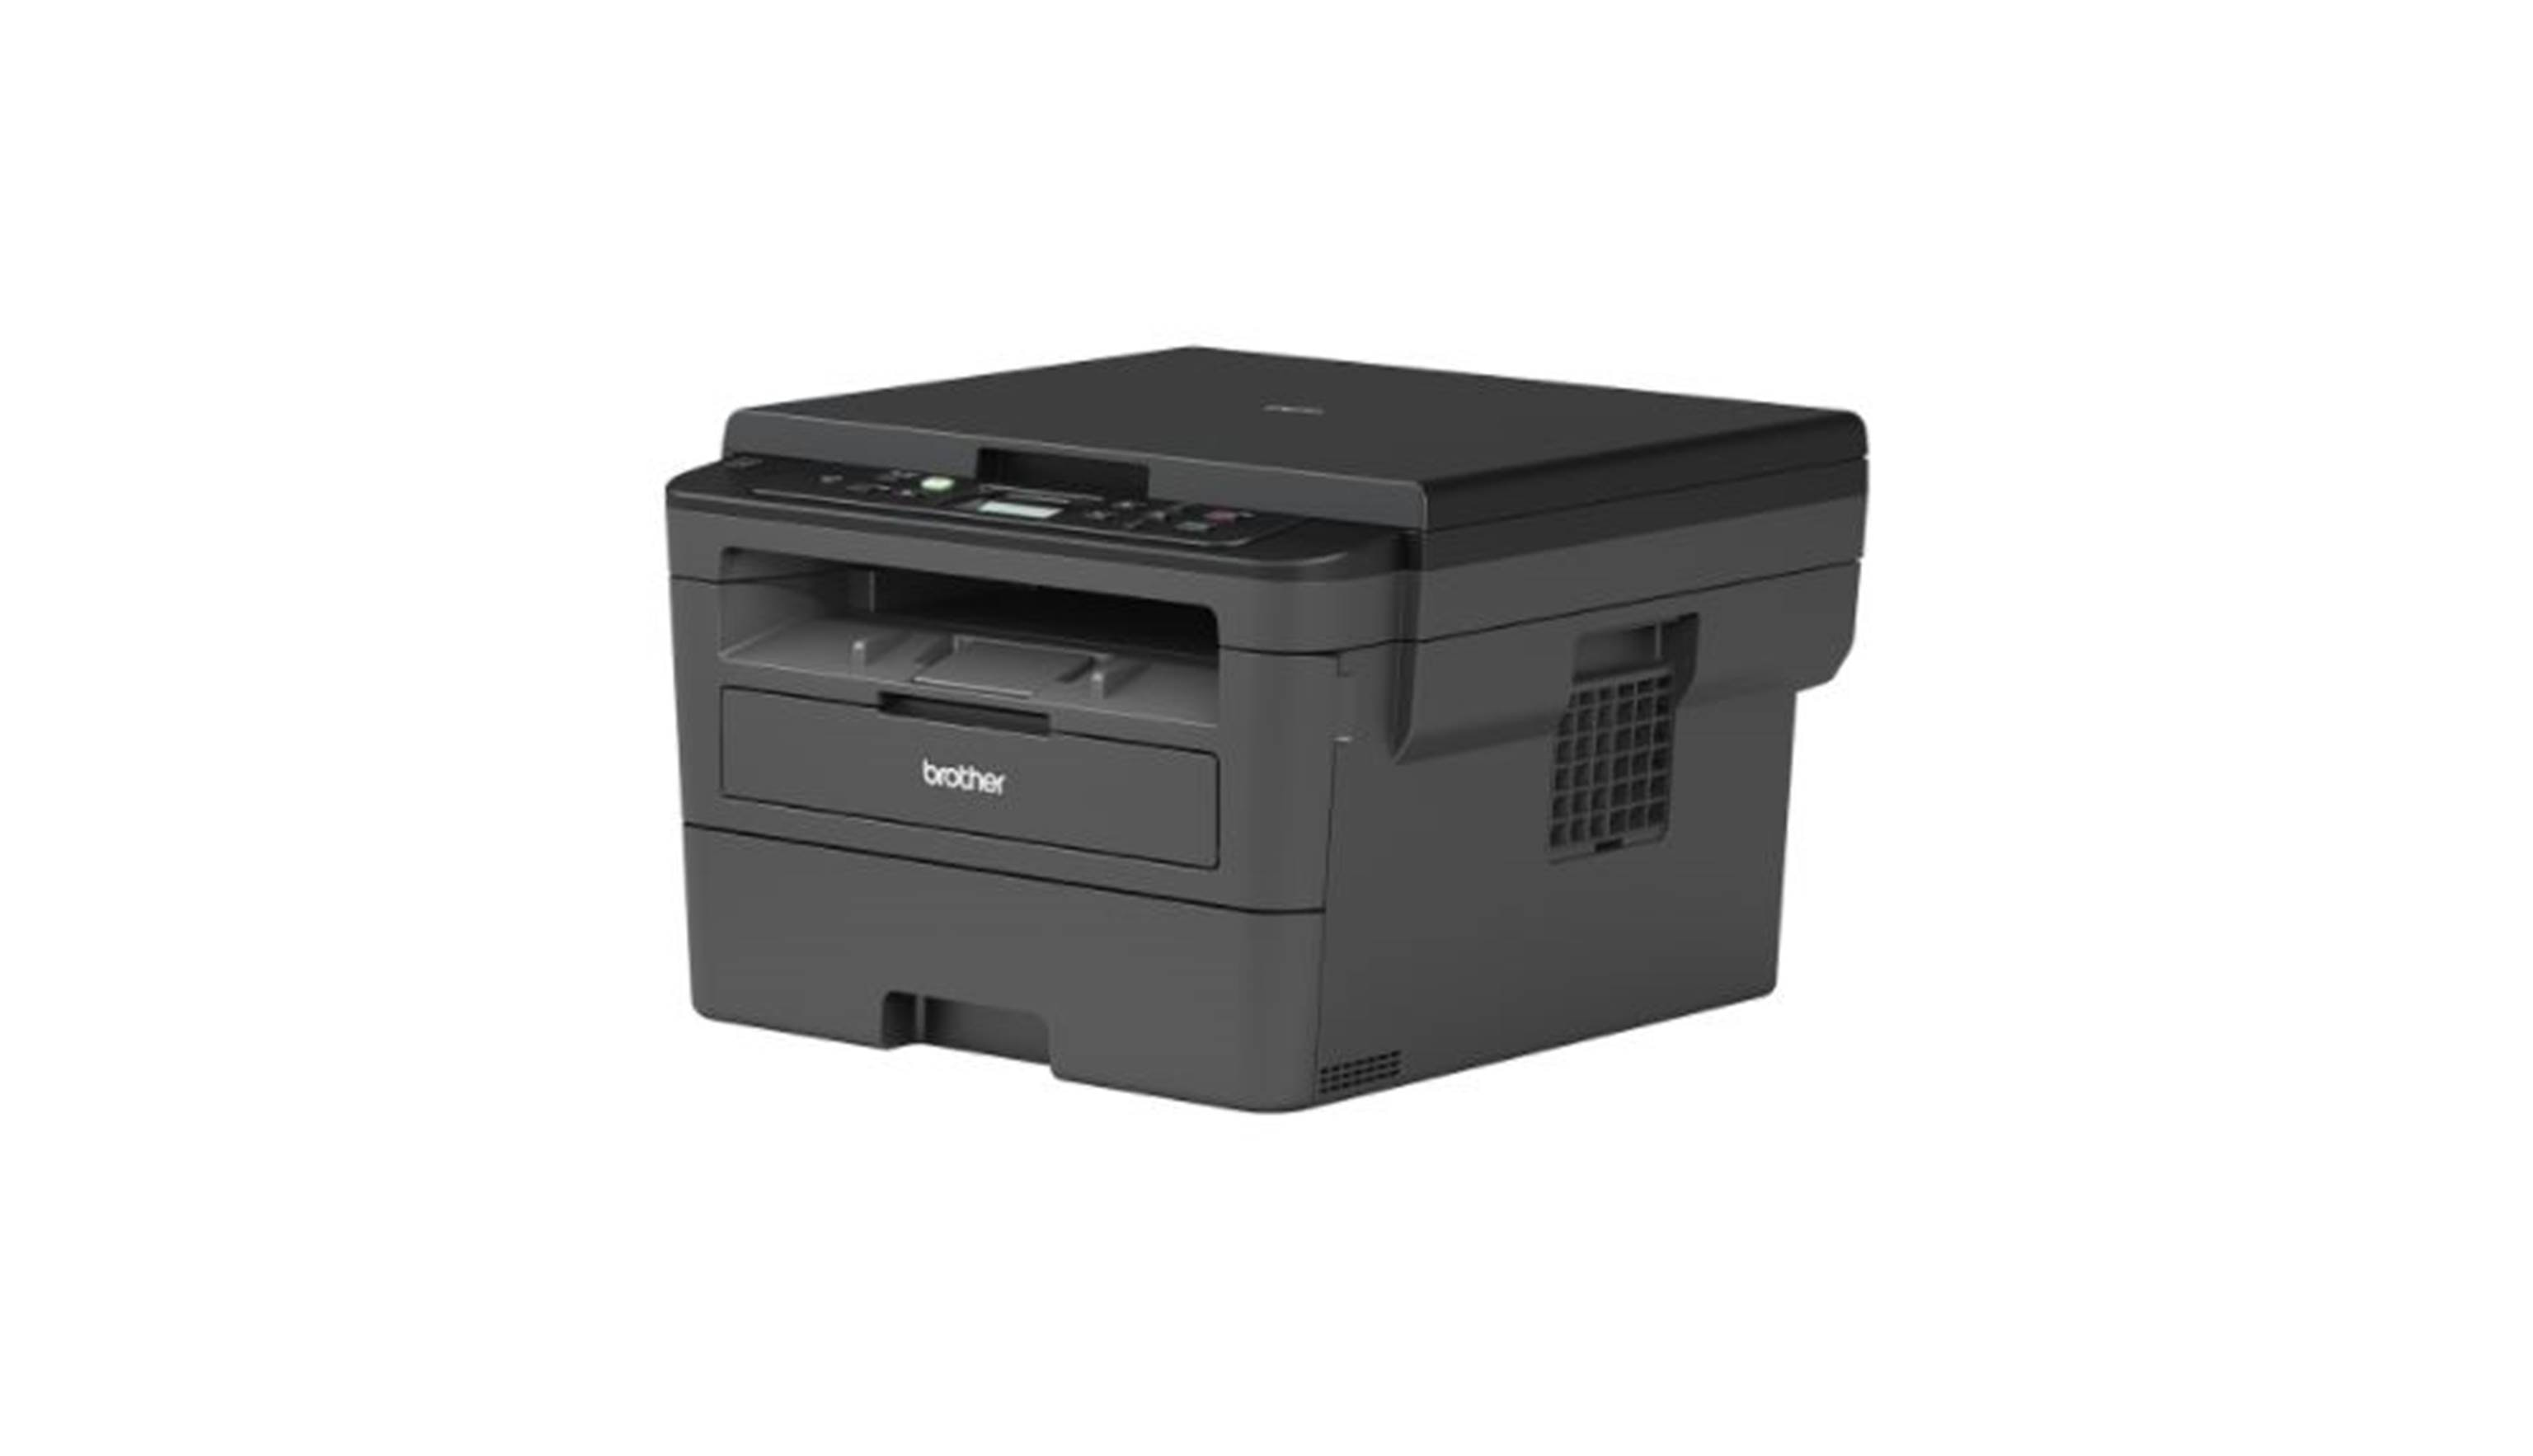 DRIVERS FOR BROTHER DCP-L2535DW